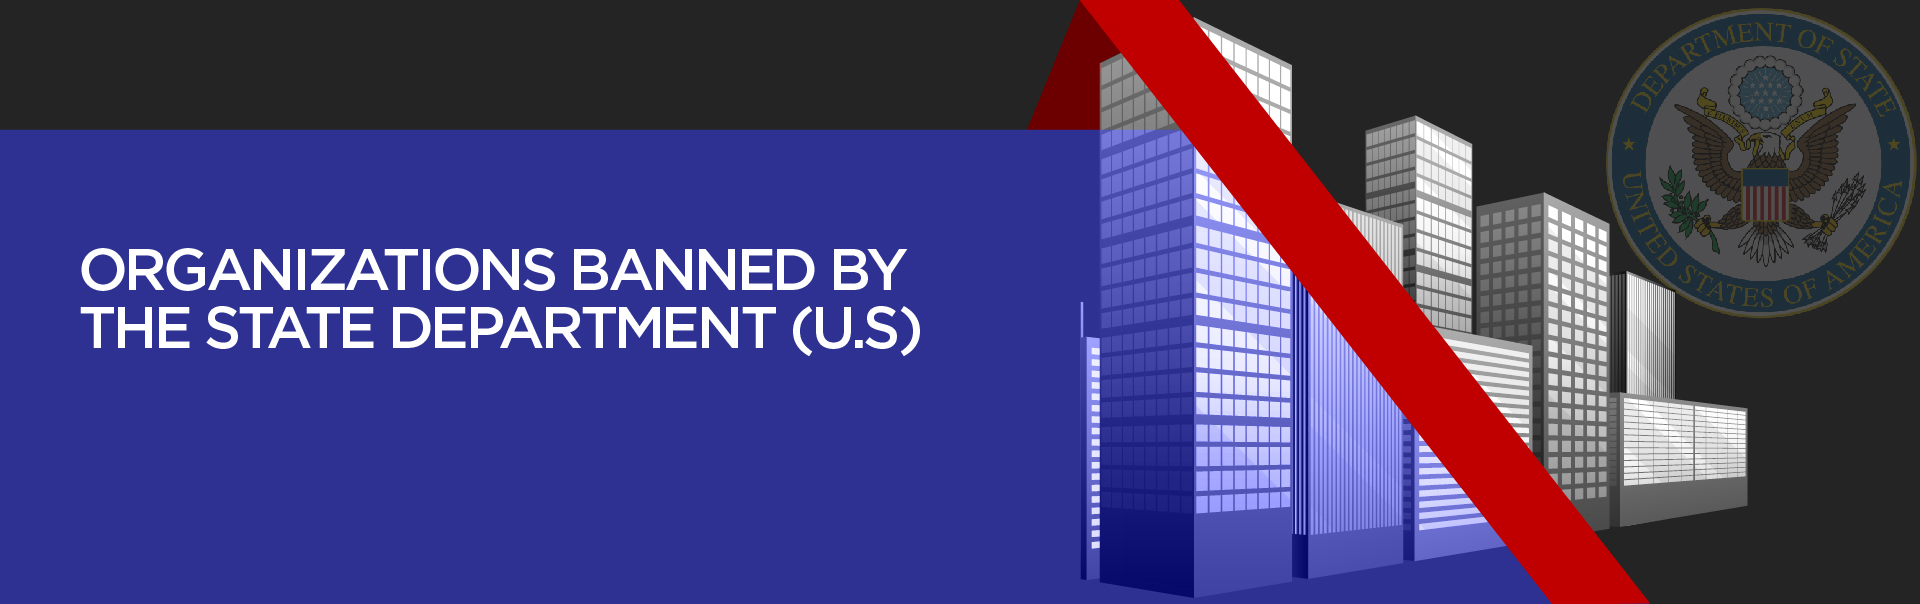 Organizations banned by the State Department (U.S)